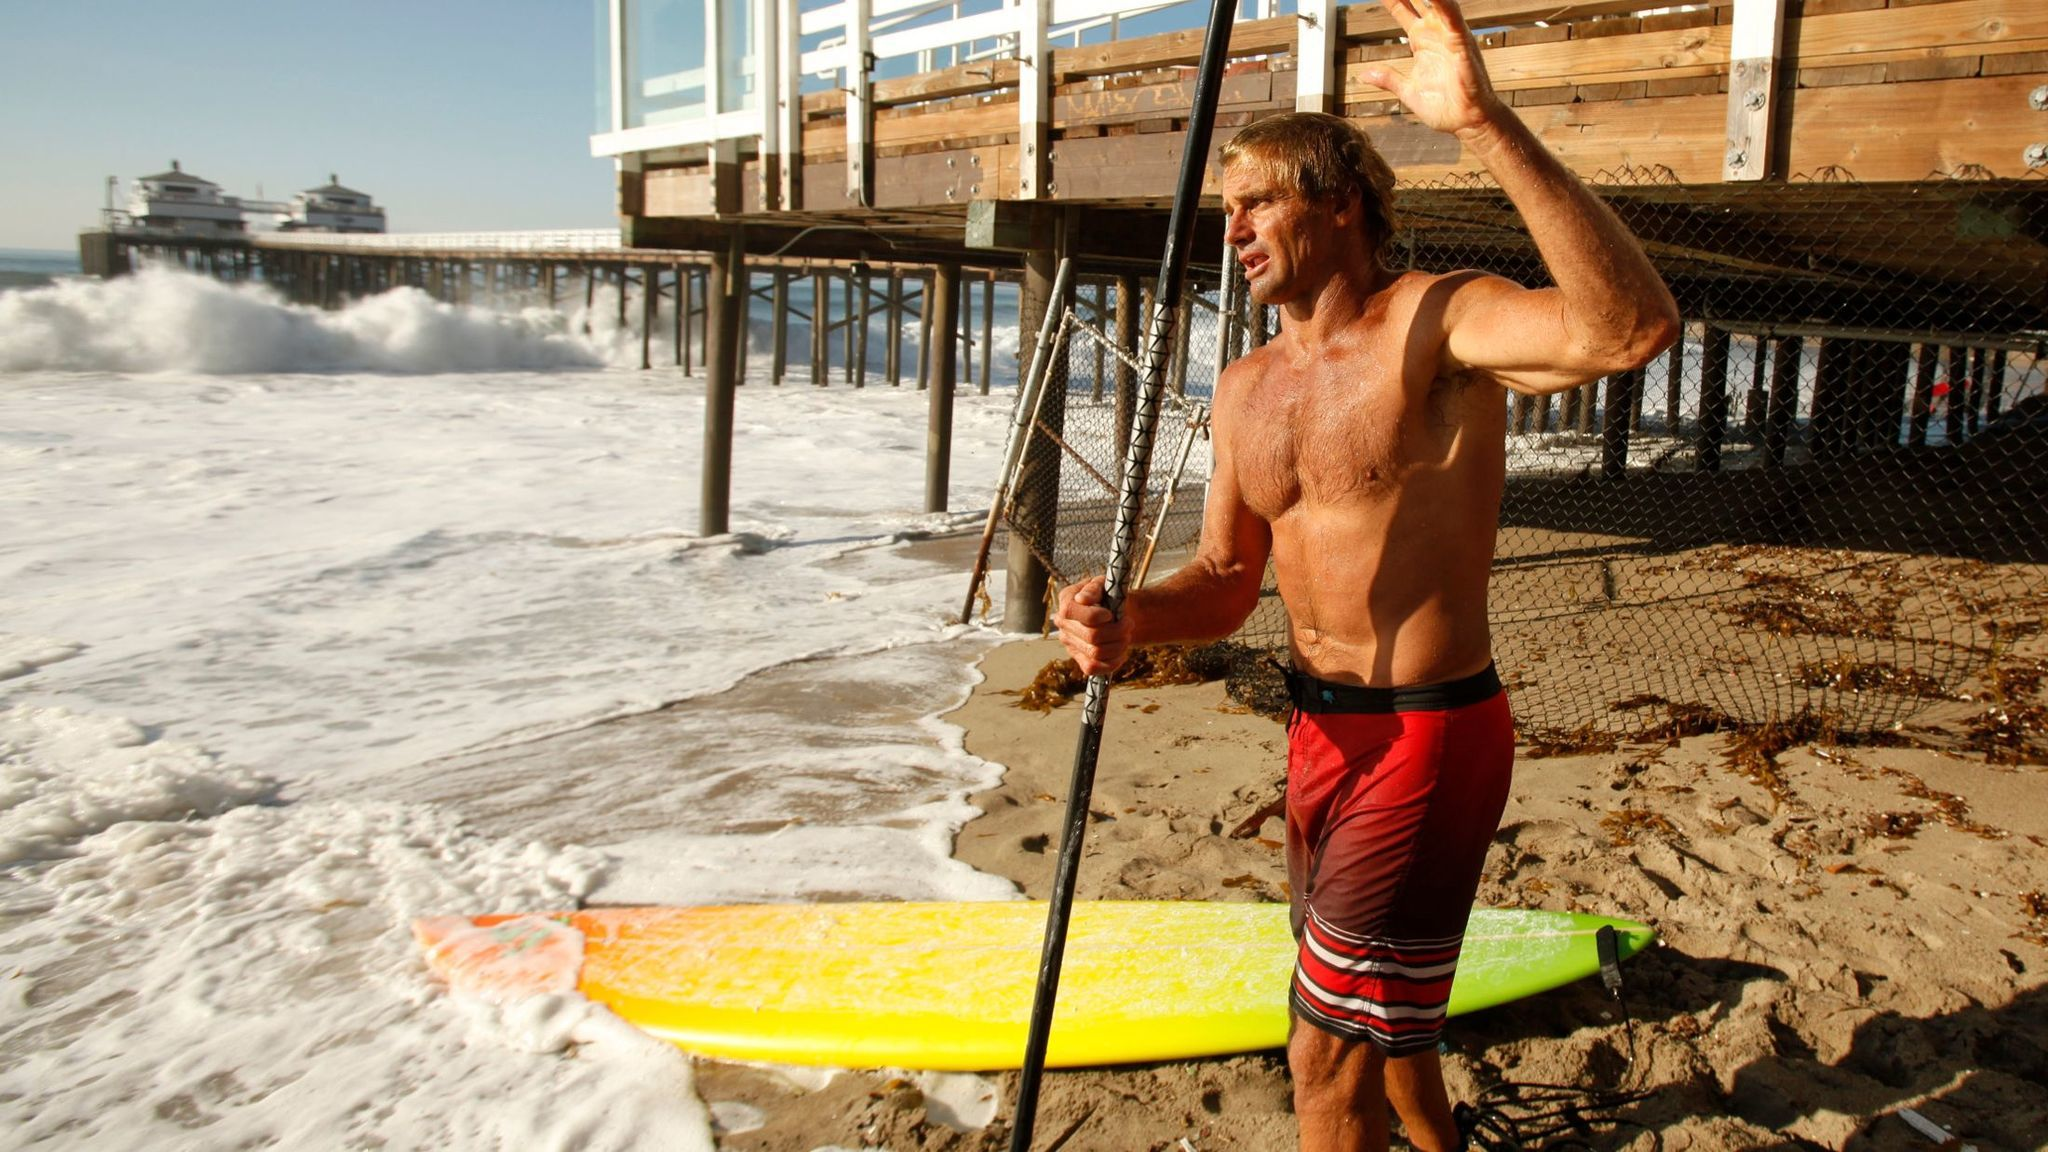 Renowned surfer Laird Hamilton prepares his standup paddle board in Malibu in this 2014 file photo.